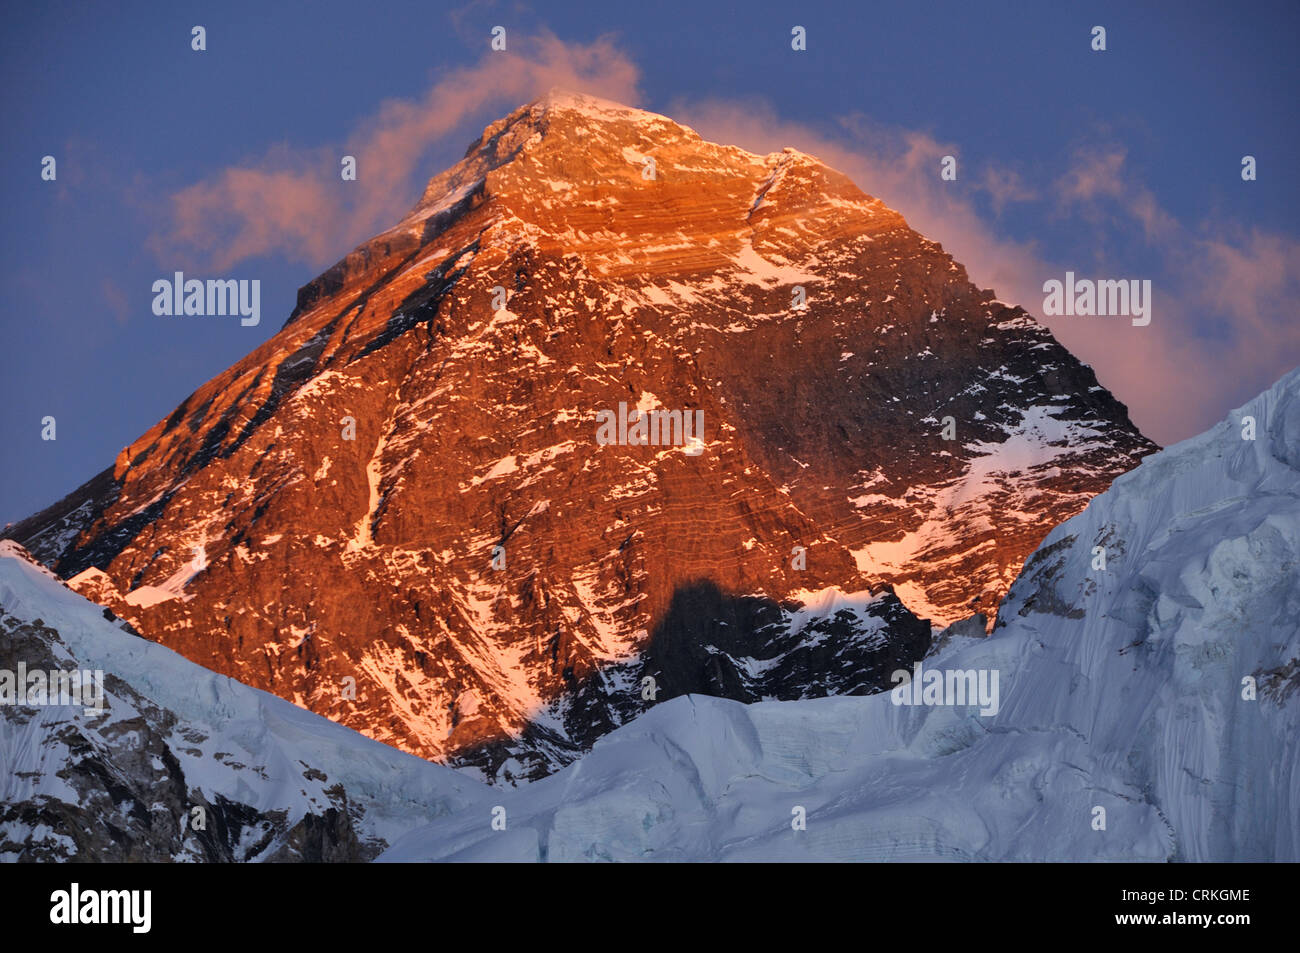 Dramatic Everest Summit Sunset, Showing South West Face - Stock Image